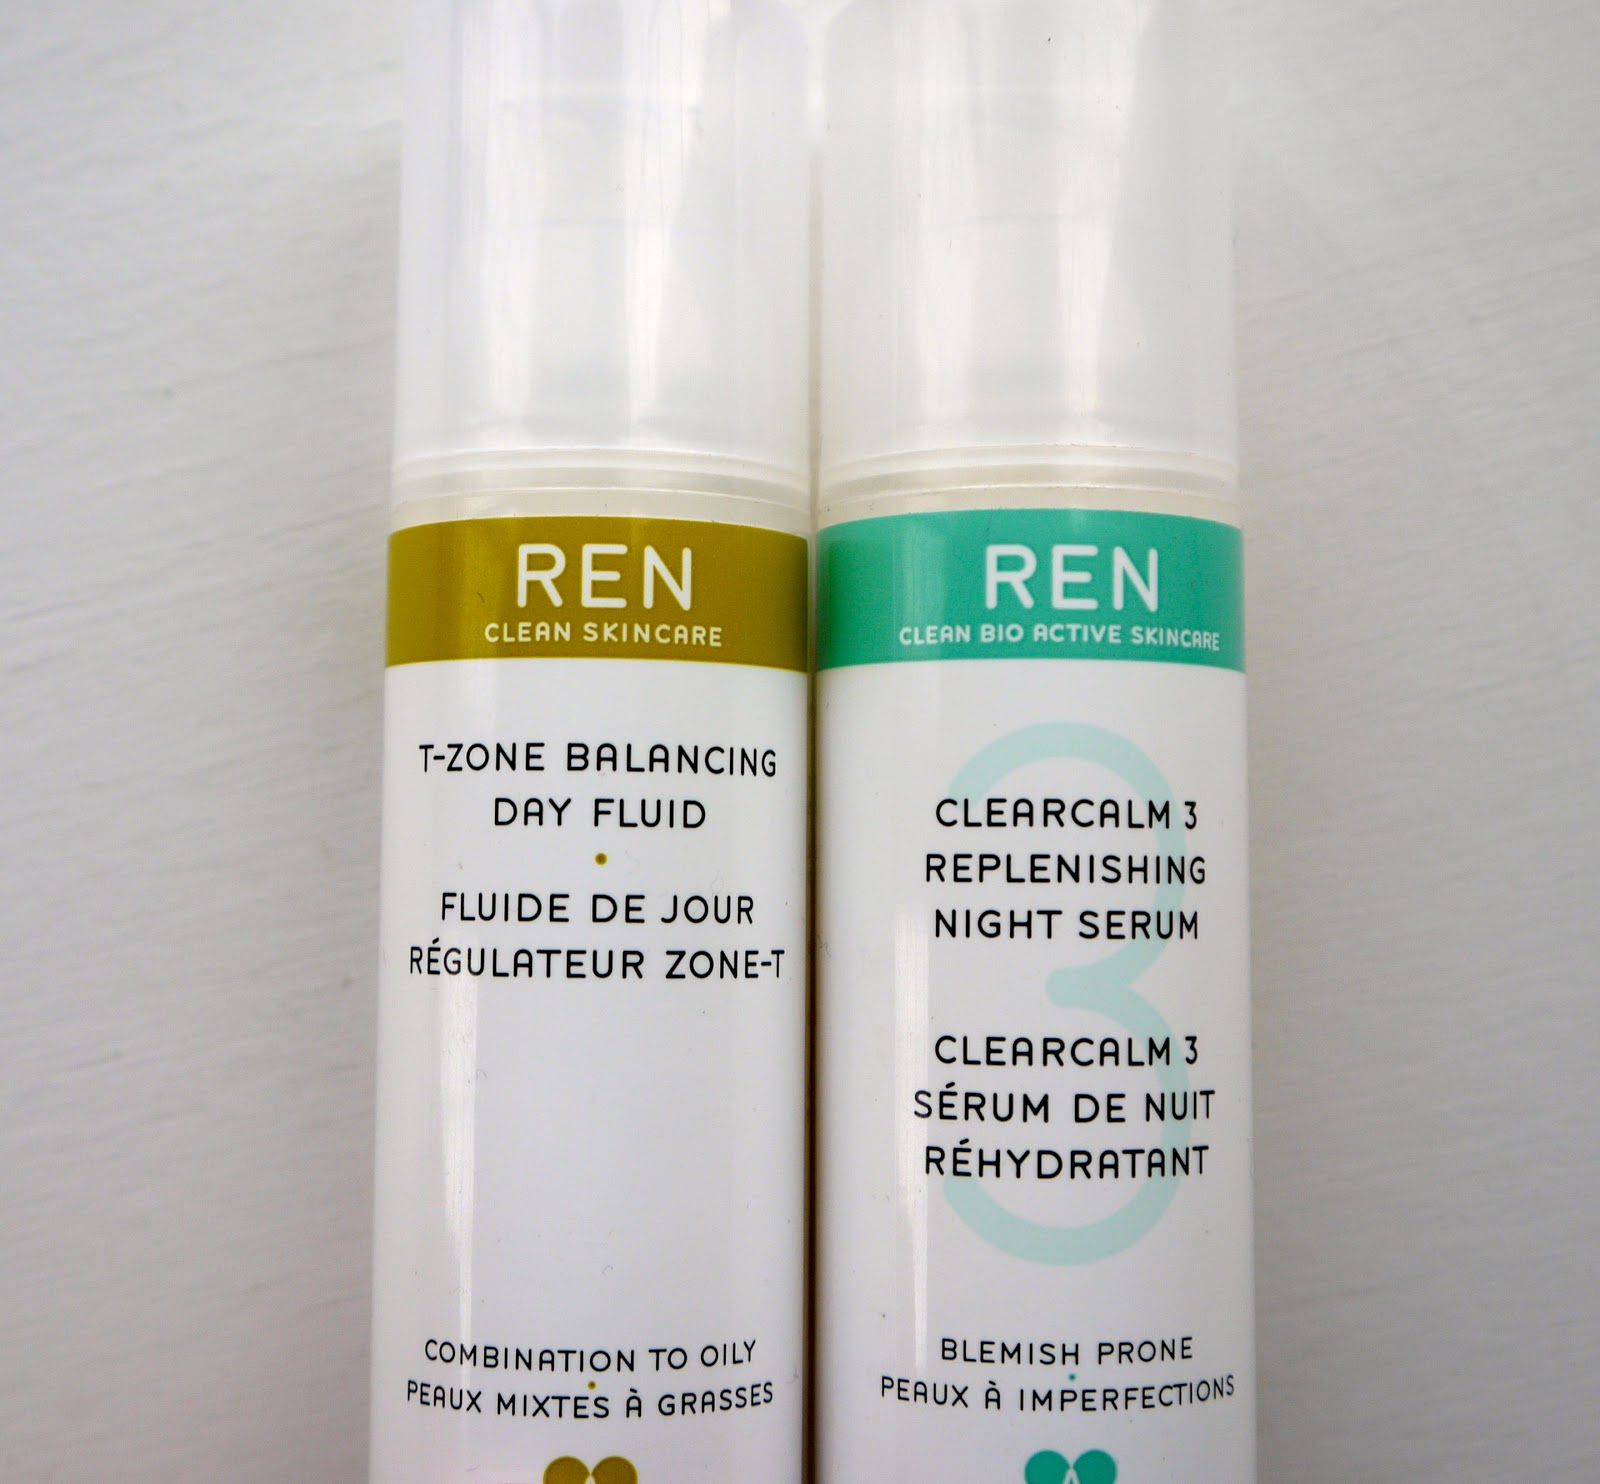 Use REN Clean Skincare coupons to buy great quality skin care products. We, at Goodshop stores provide you REN Clean skincare products which aim at making your skin beautiful, smooth and healthy. Our products are prepared in such a way that its desired use is reached to the customers.